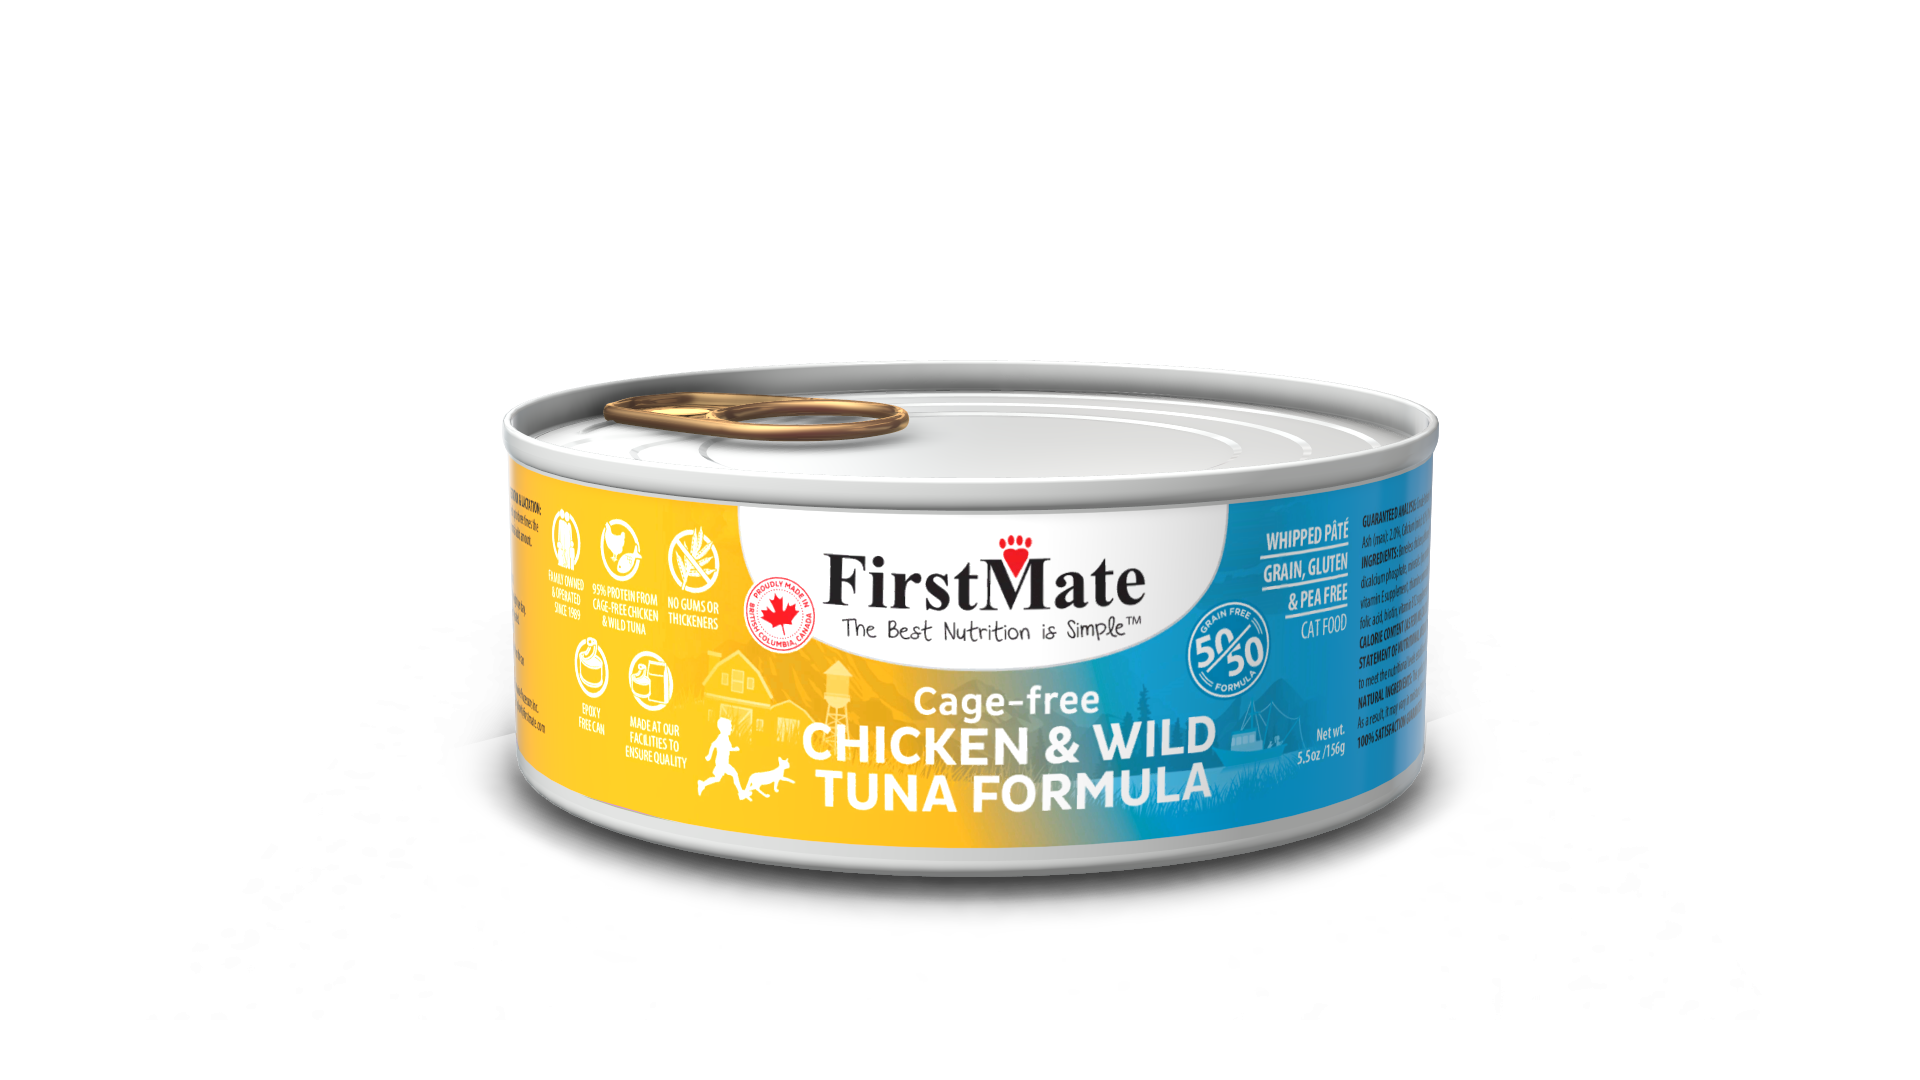 FirstMate Grain & Gluten Free, Free Run Chicken & Wild Tuna 50/50 Formula for Cats (156g)